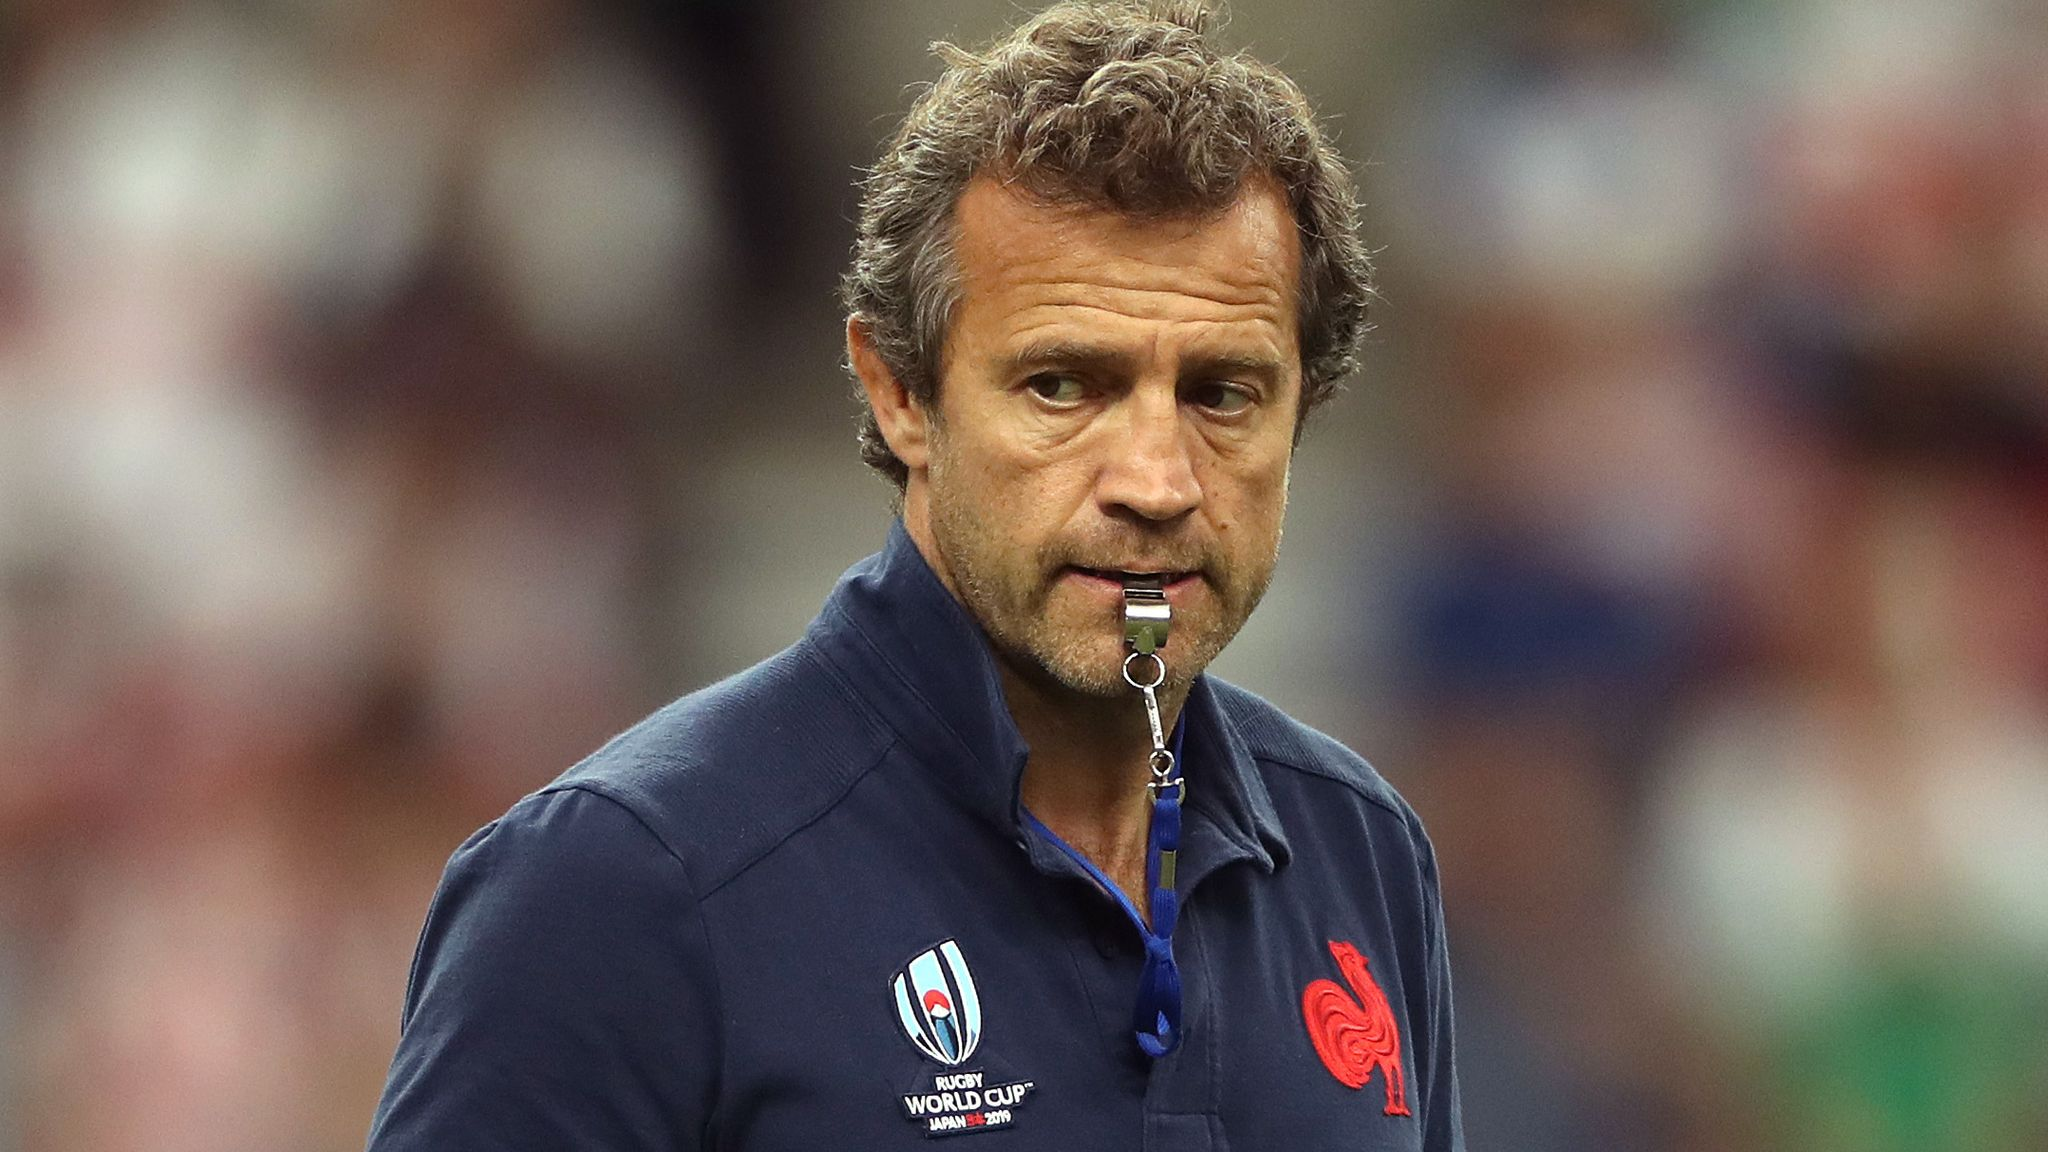 Six Nations: 'Brutal' England targeting youthful France in Paris